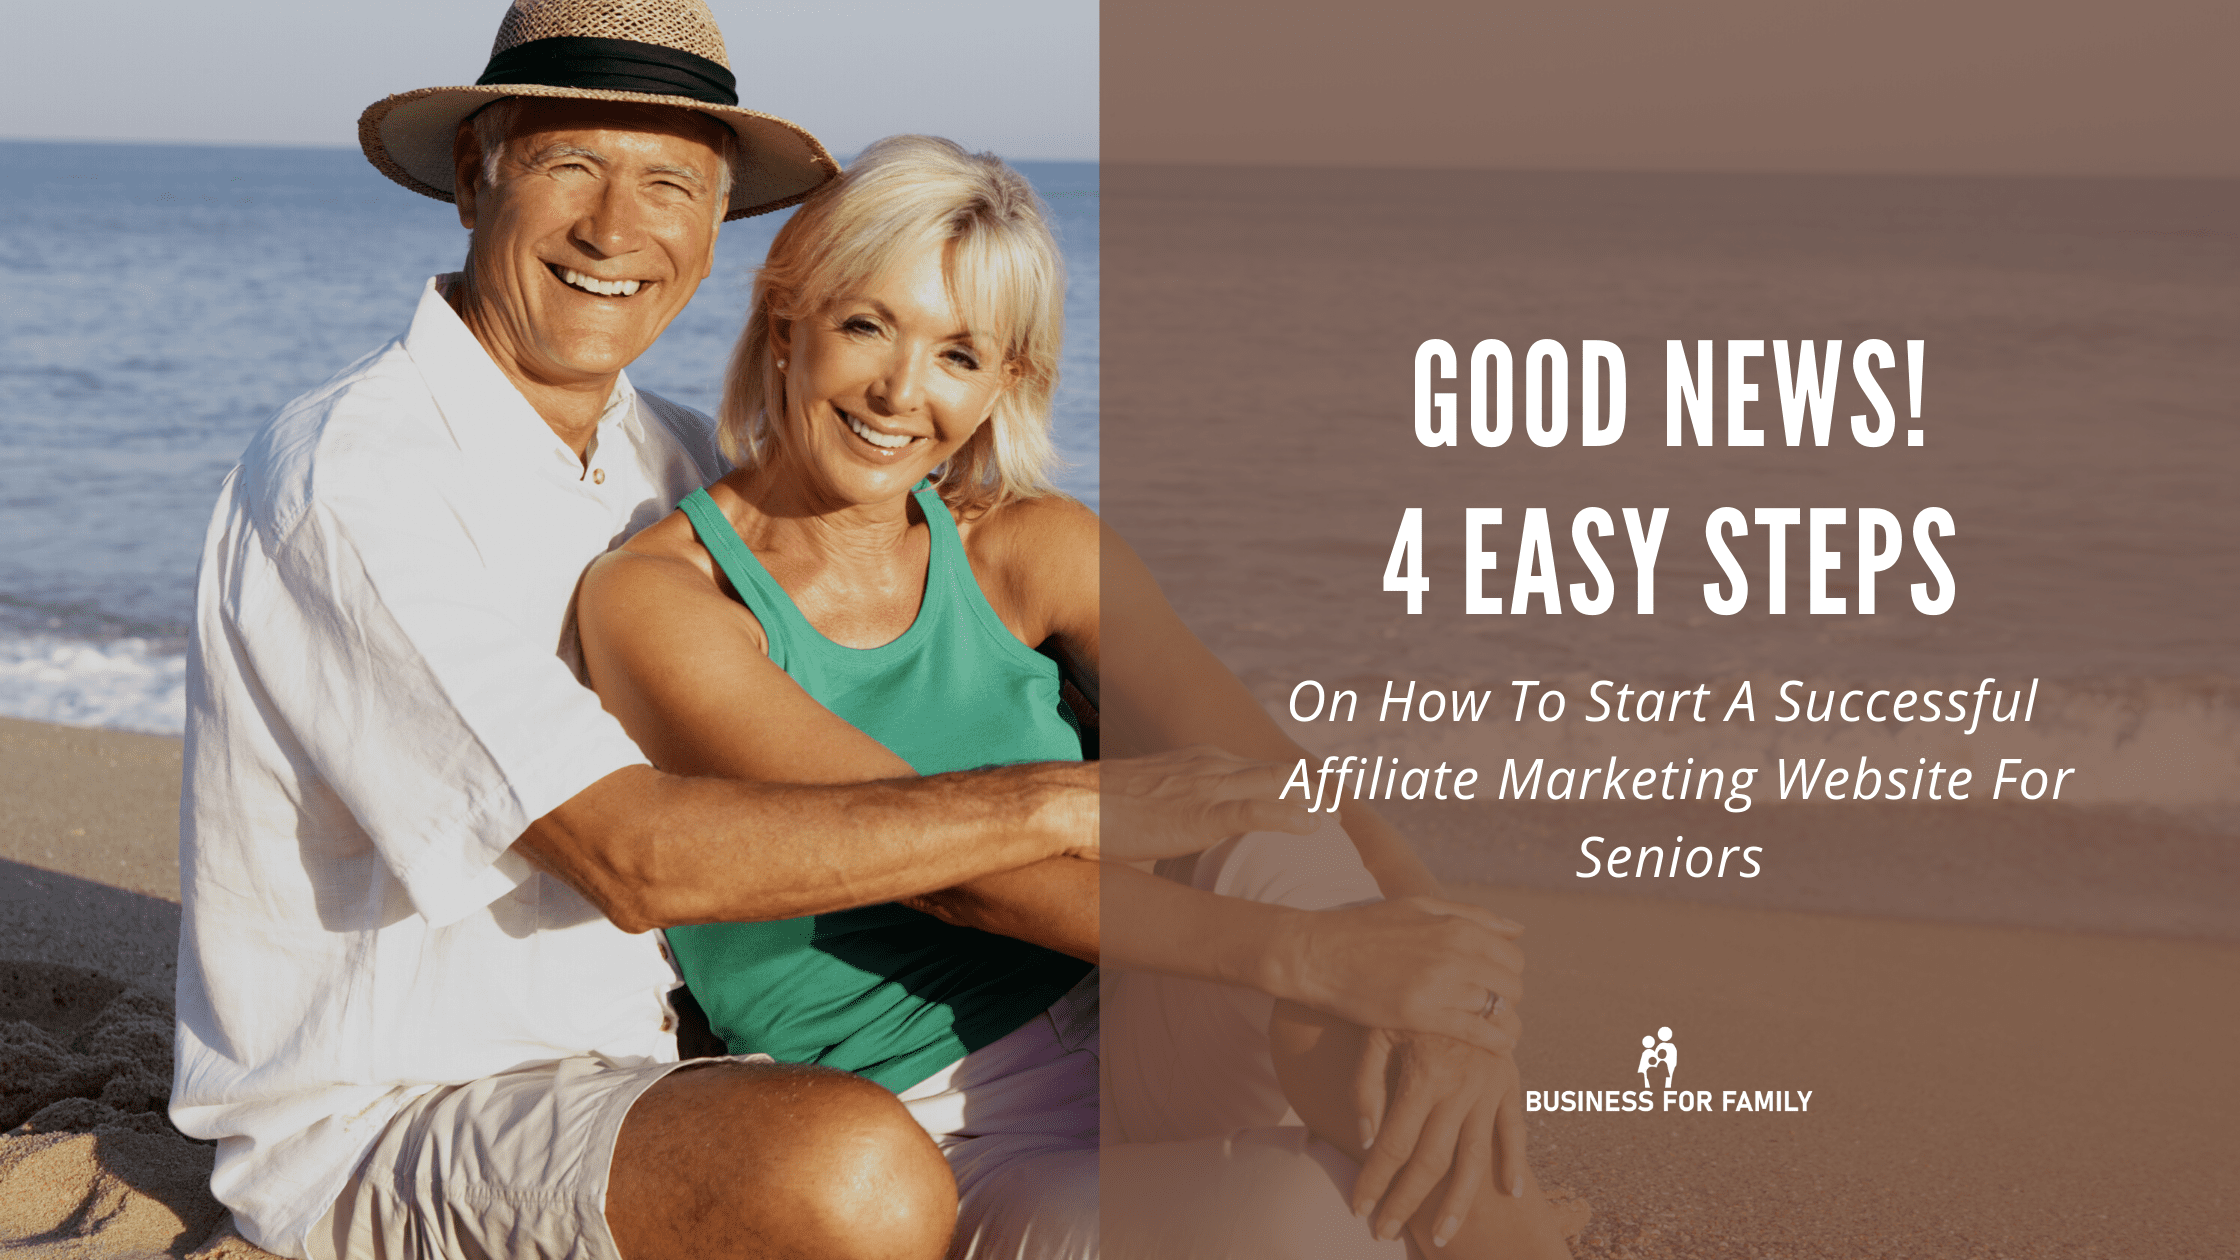 Affiliate Marketing For Seniors - A business Opportunity That You Can Not Ignore